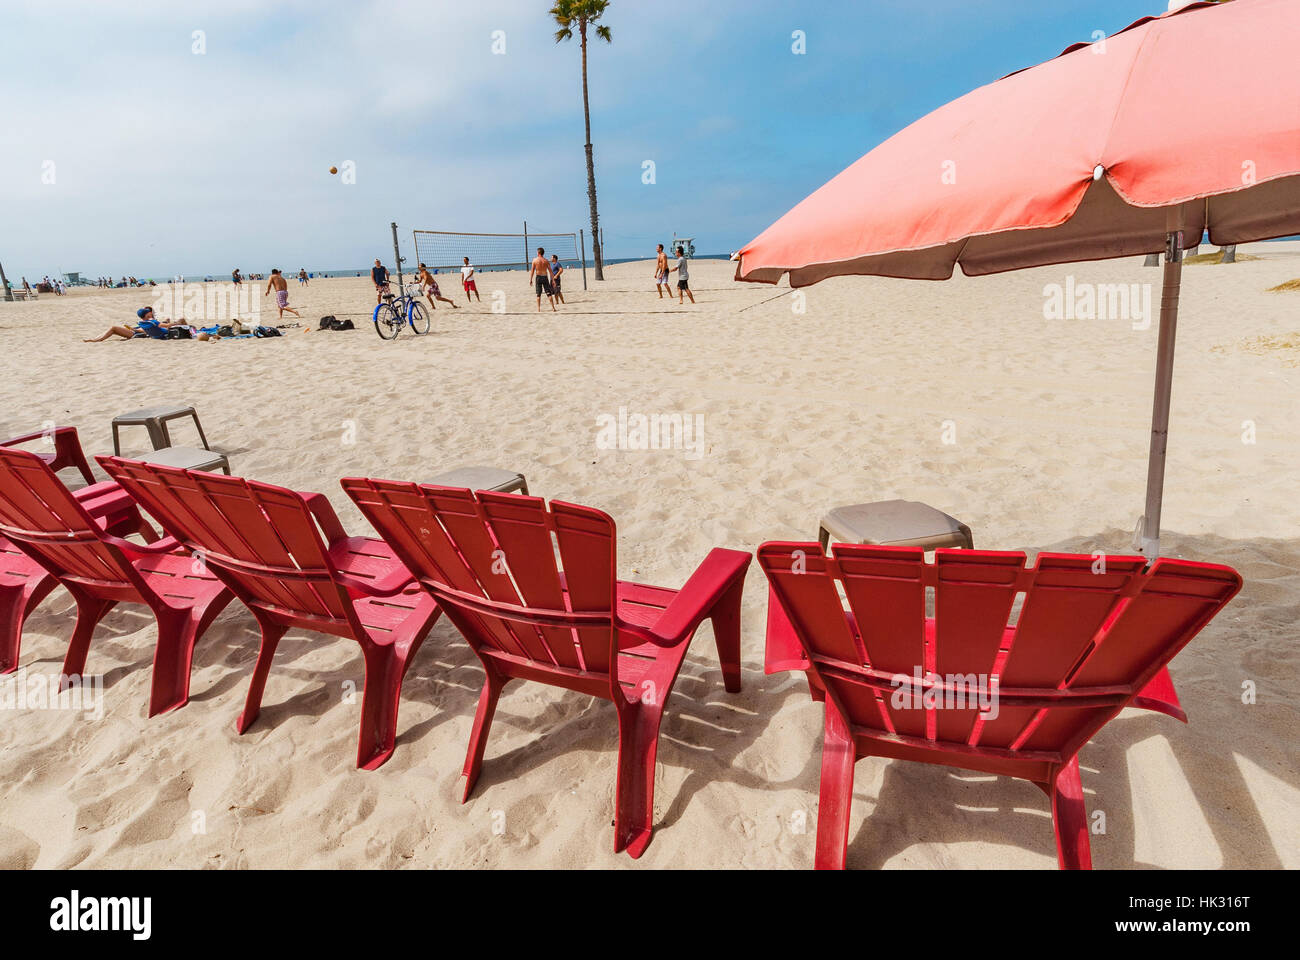 Five Red Plastic Adirondack Chairs And A Faded Red Umbrella Sitting On The  Sand At Venice